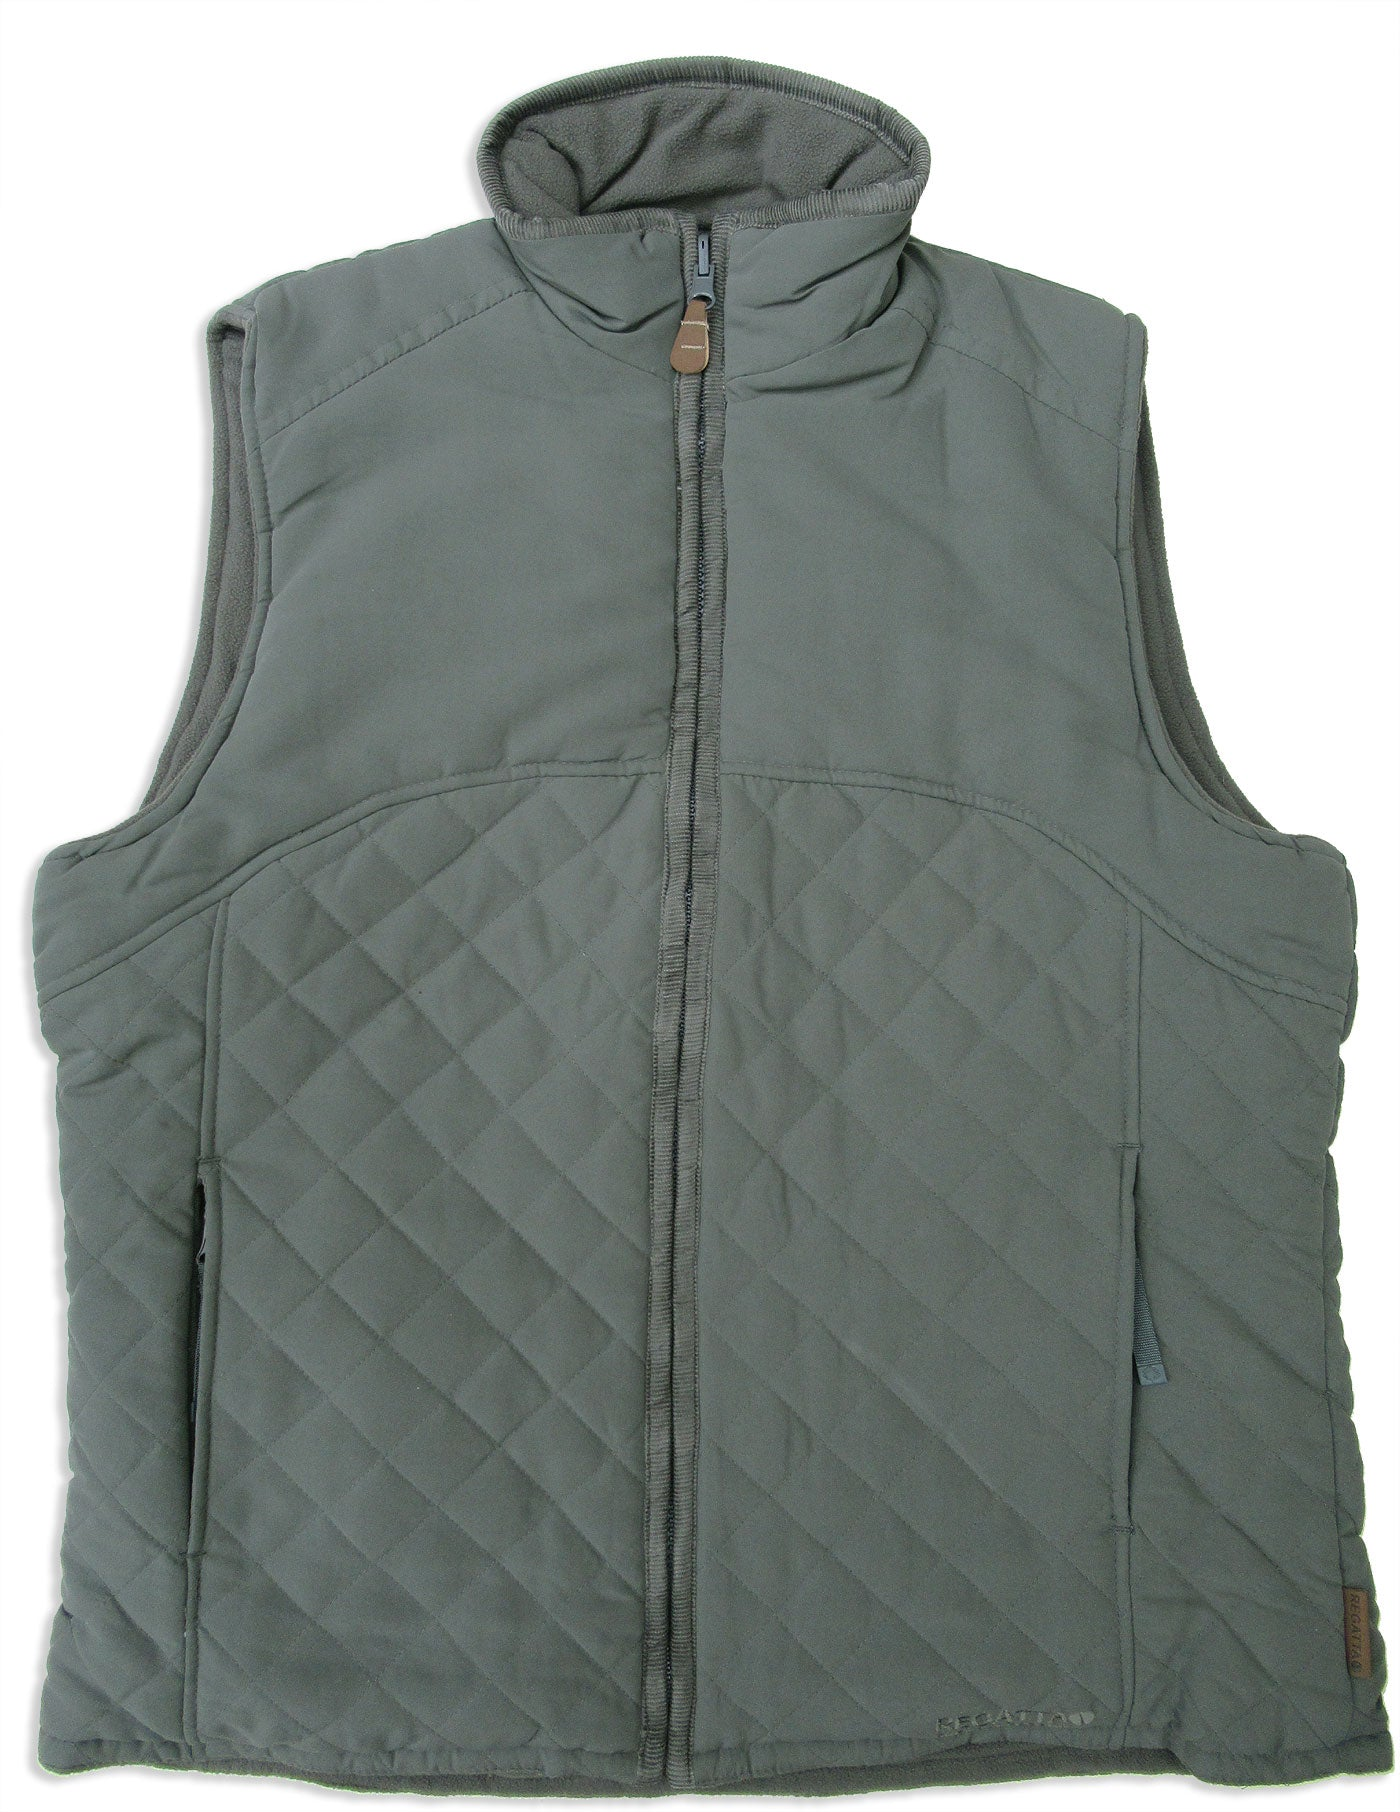 MOD GREEN Bronwen Body Warmer by Regatta